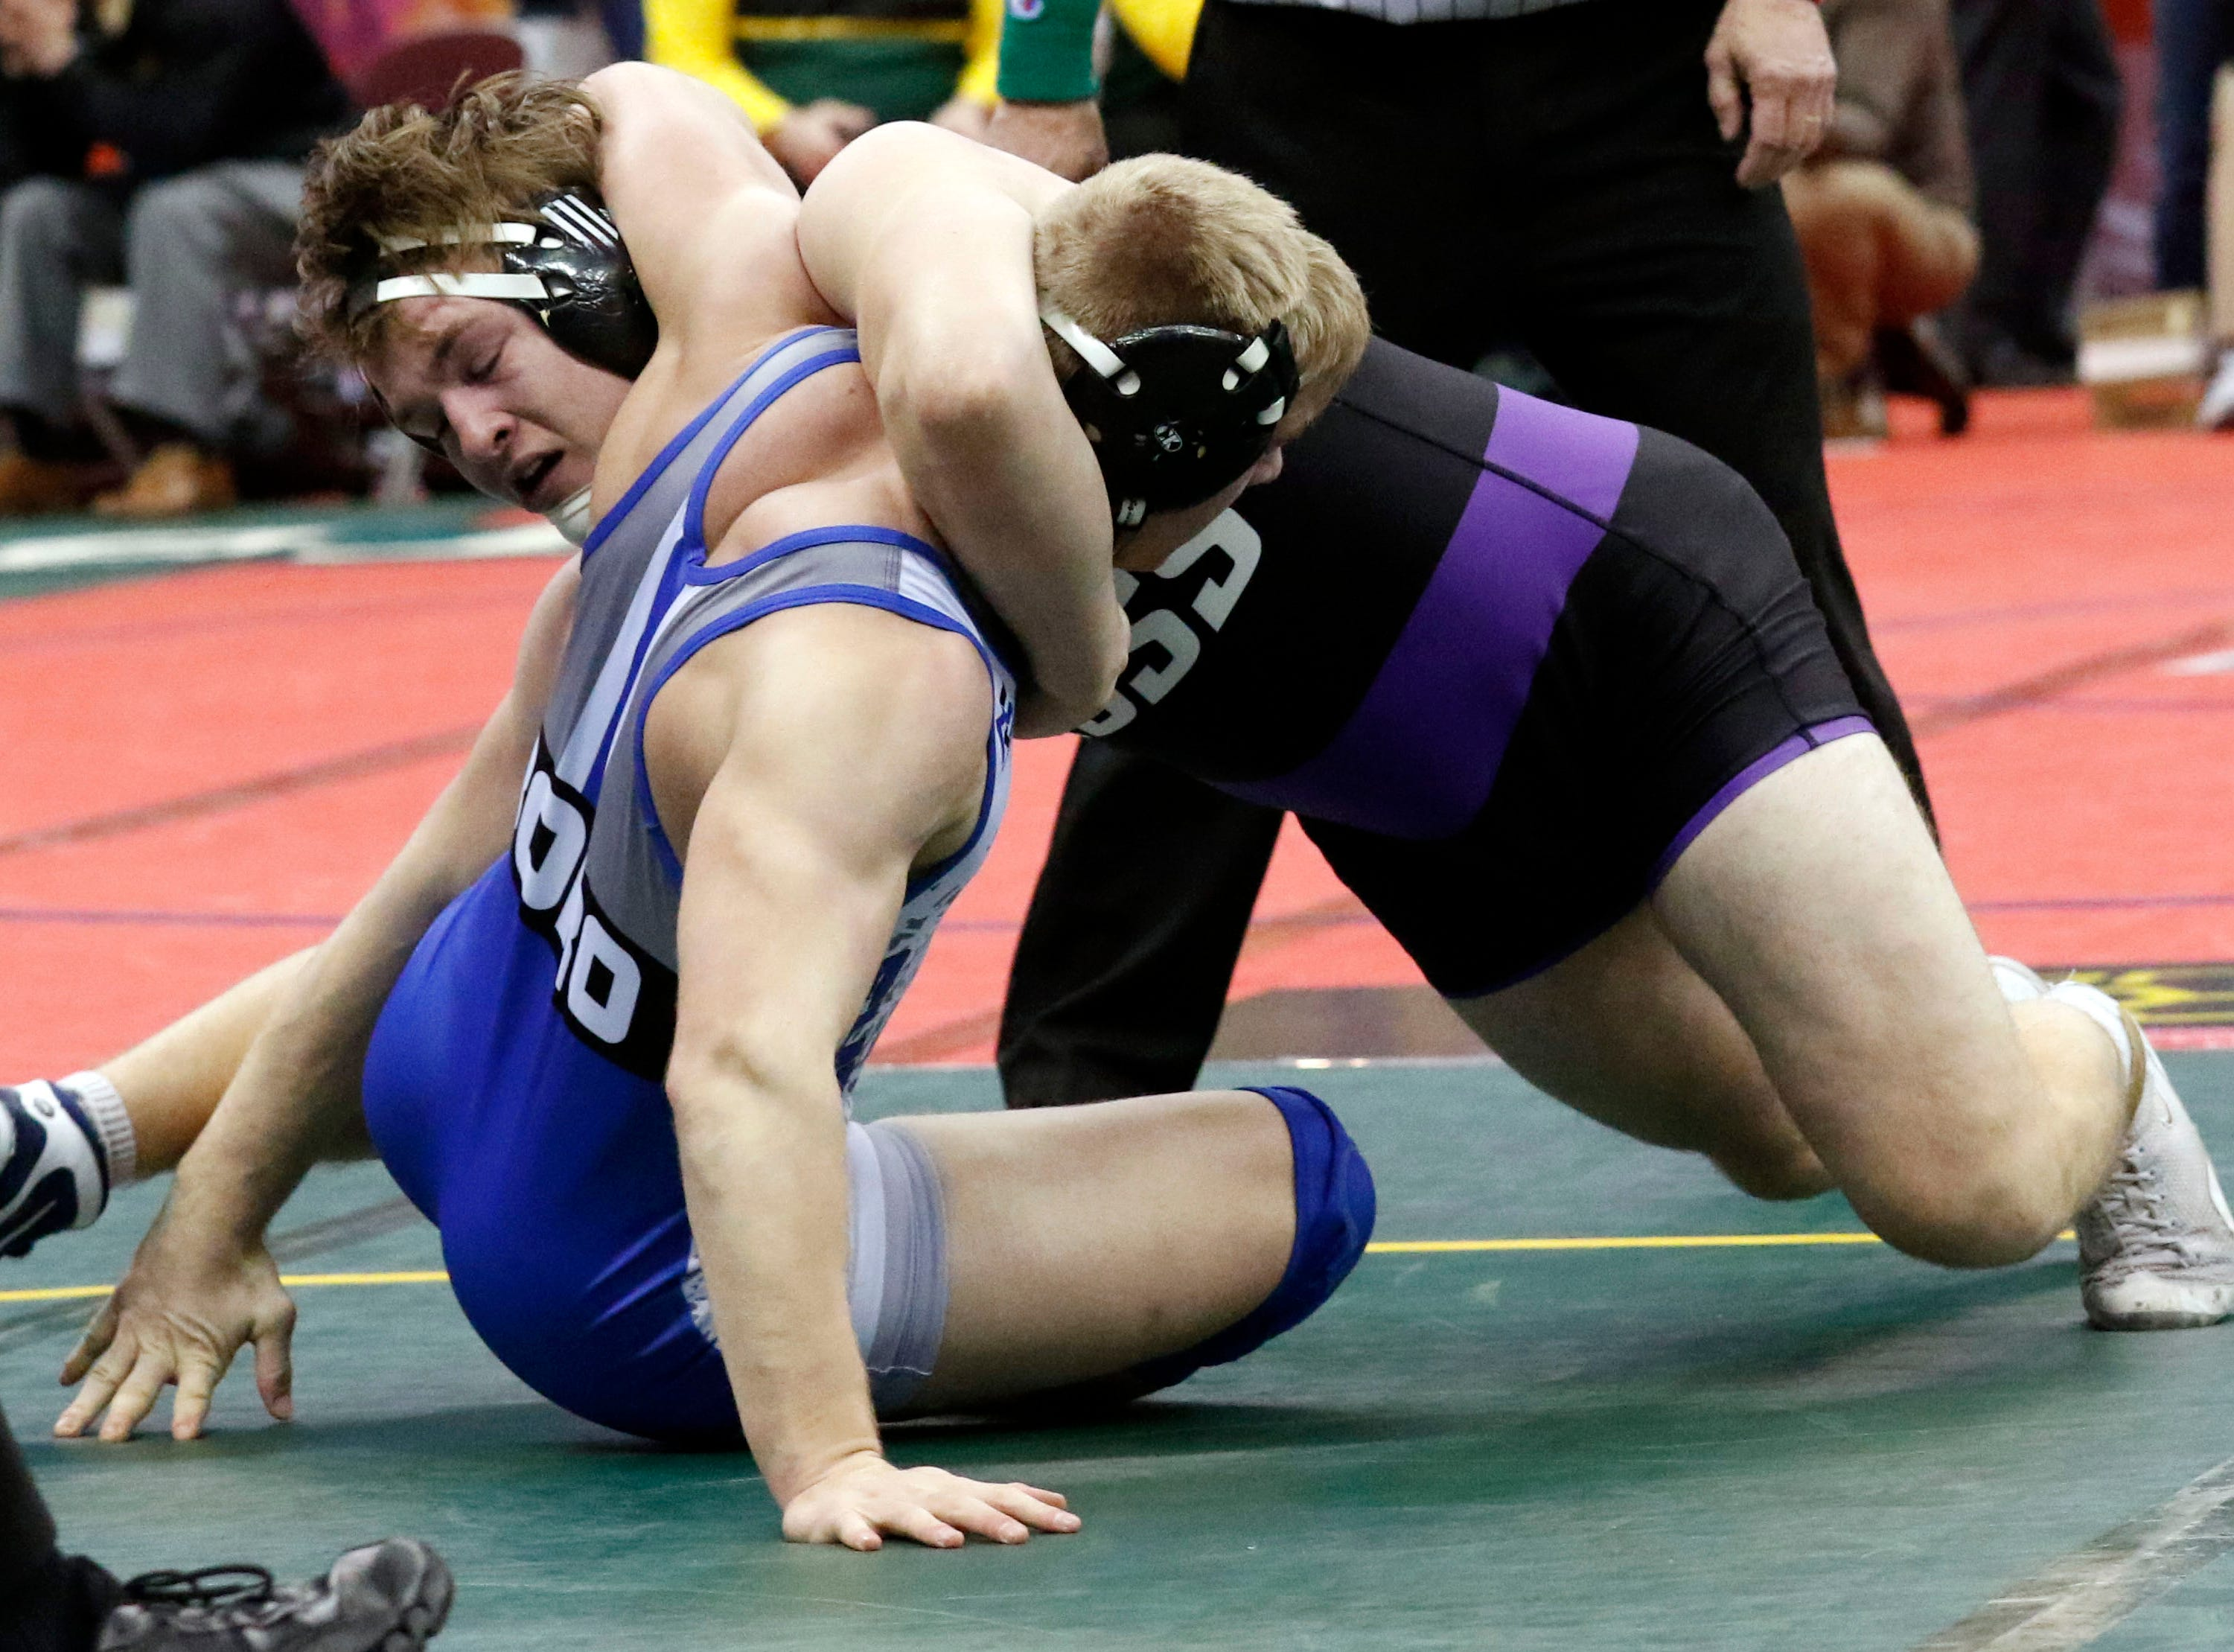 Fremont Ross' Caleb Wood wrestles during the State Wrestling Tournament Thursday, March 7, 2019, at the Jerome Schottenstein Center at Ohio State University in Columbus.